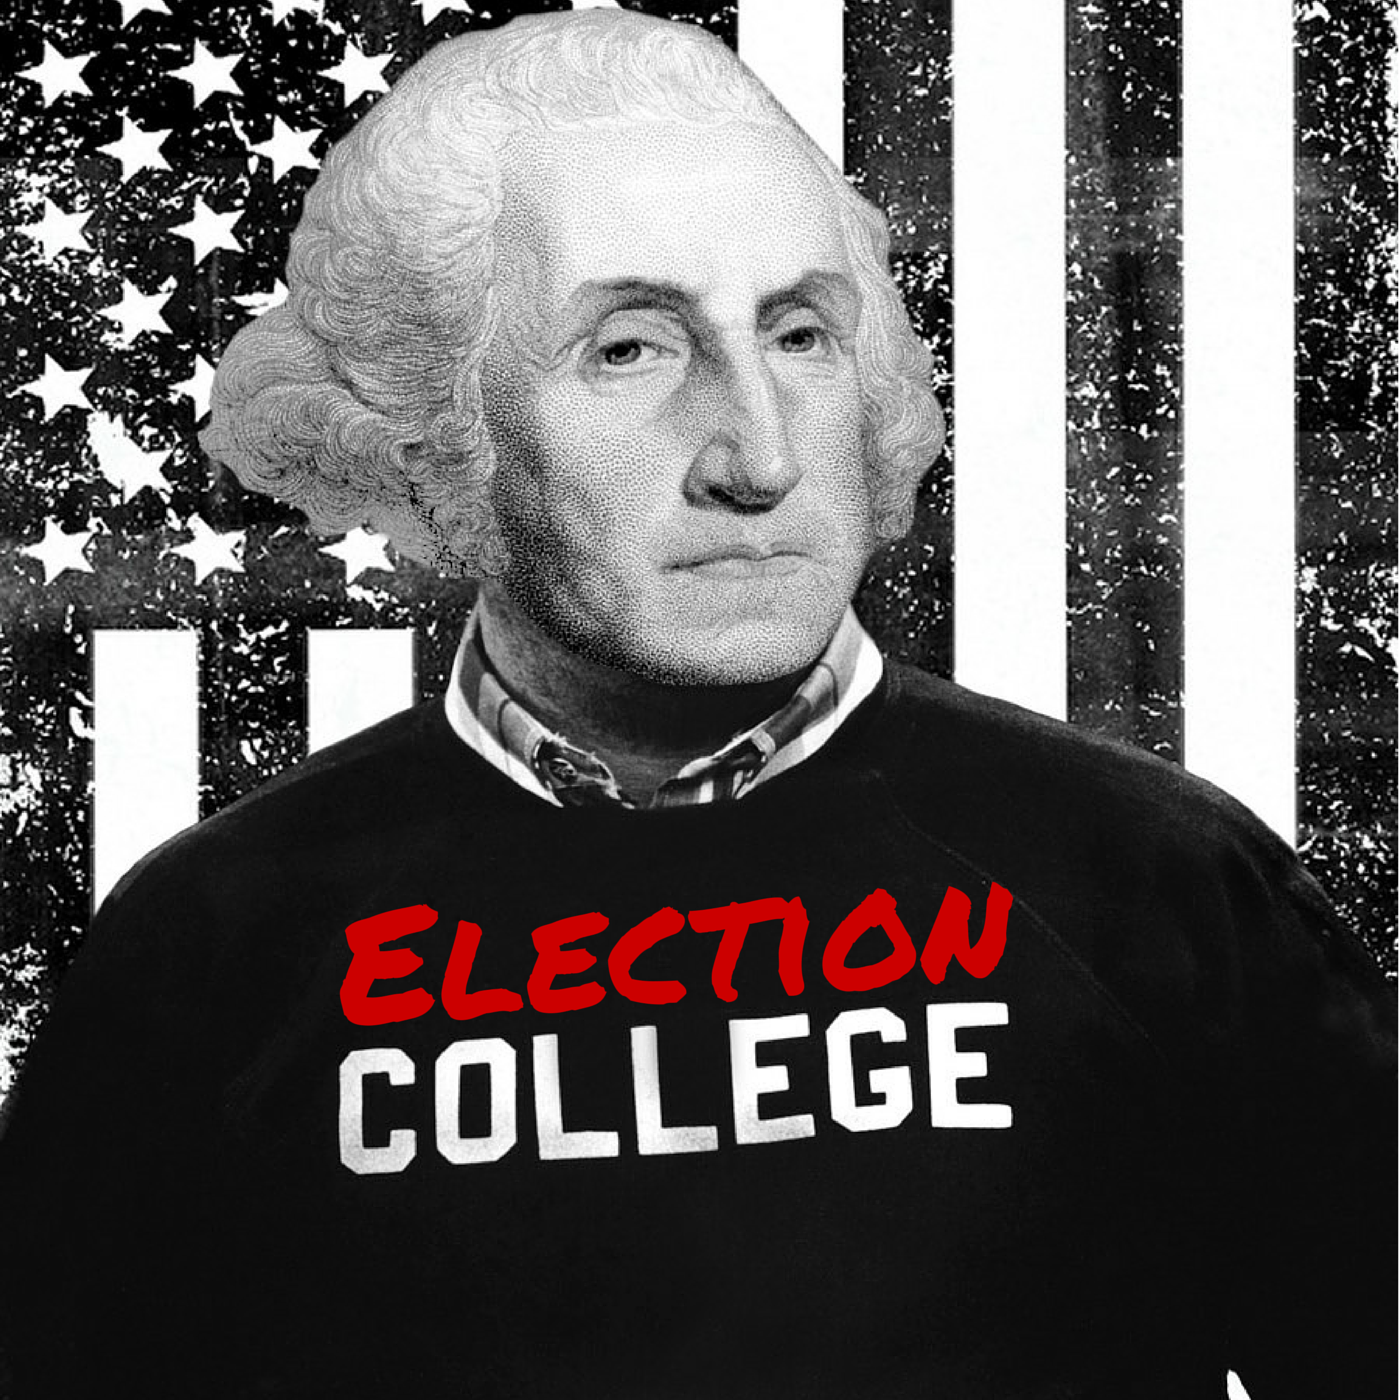 Abraham Lincoln - Part 1 | Episode #226 | Election College: United States Presidential Election History